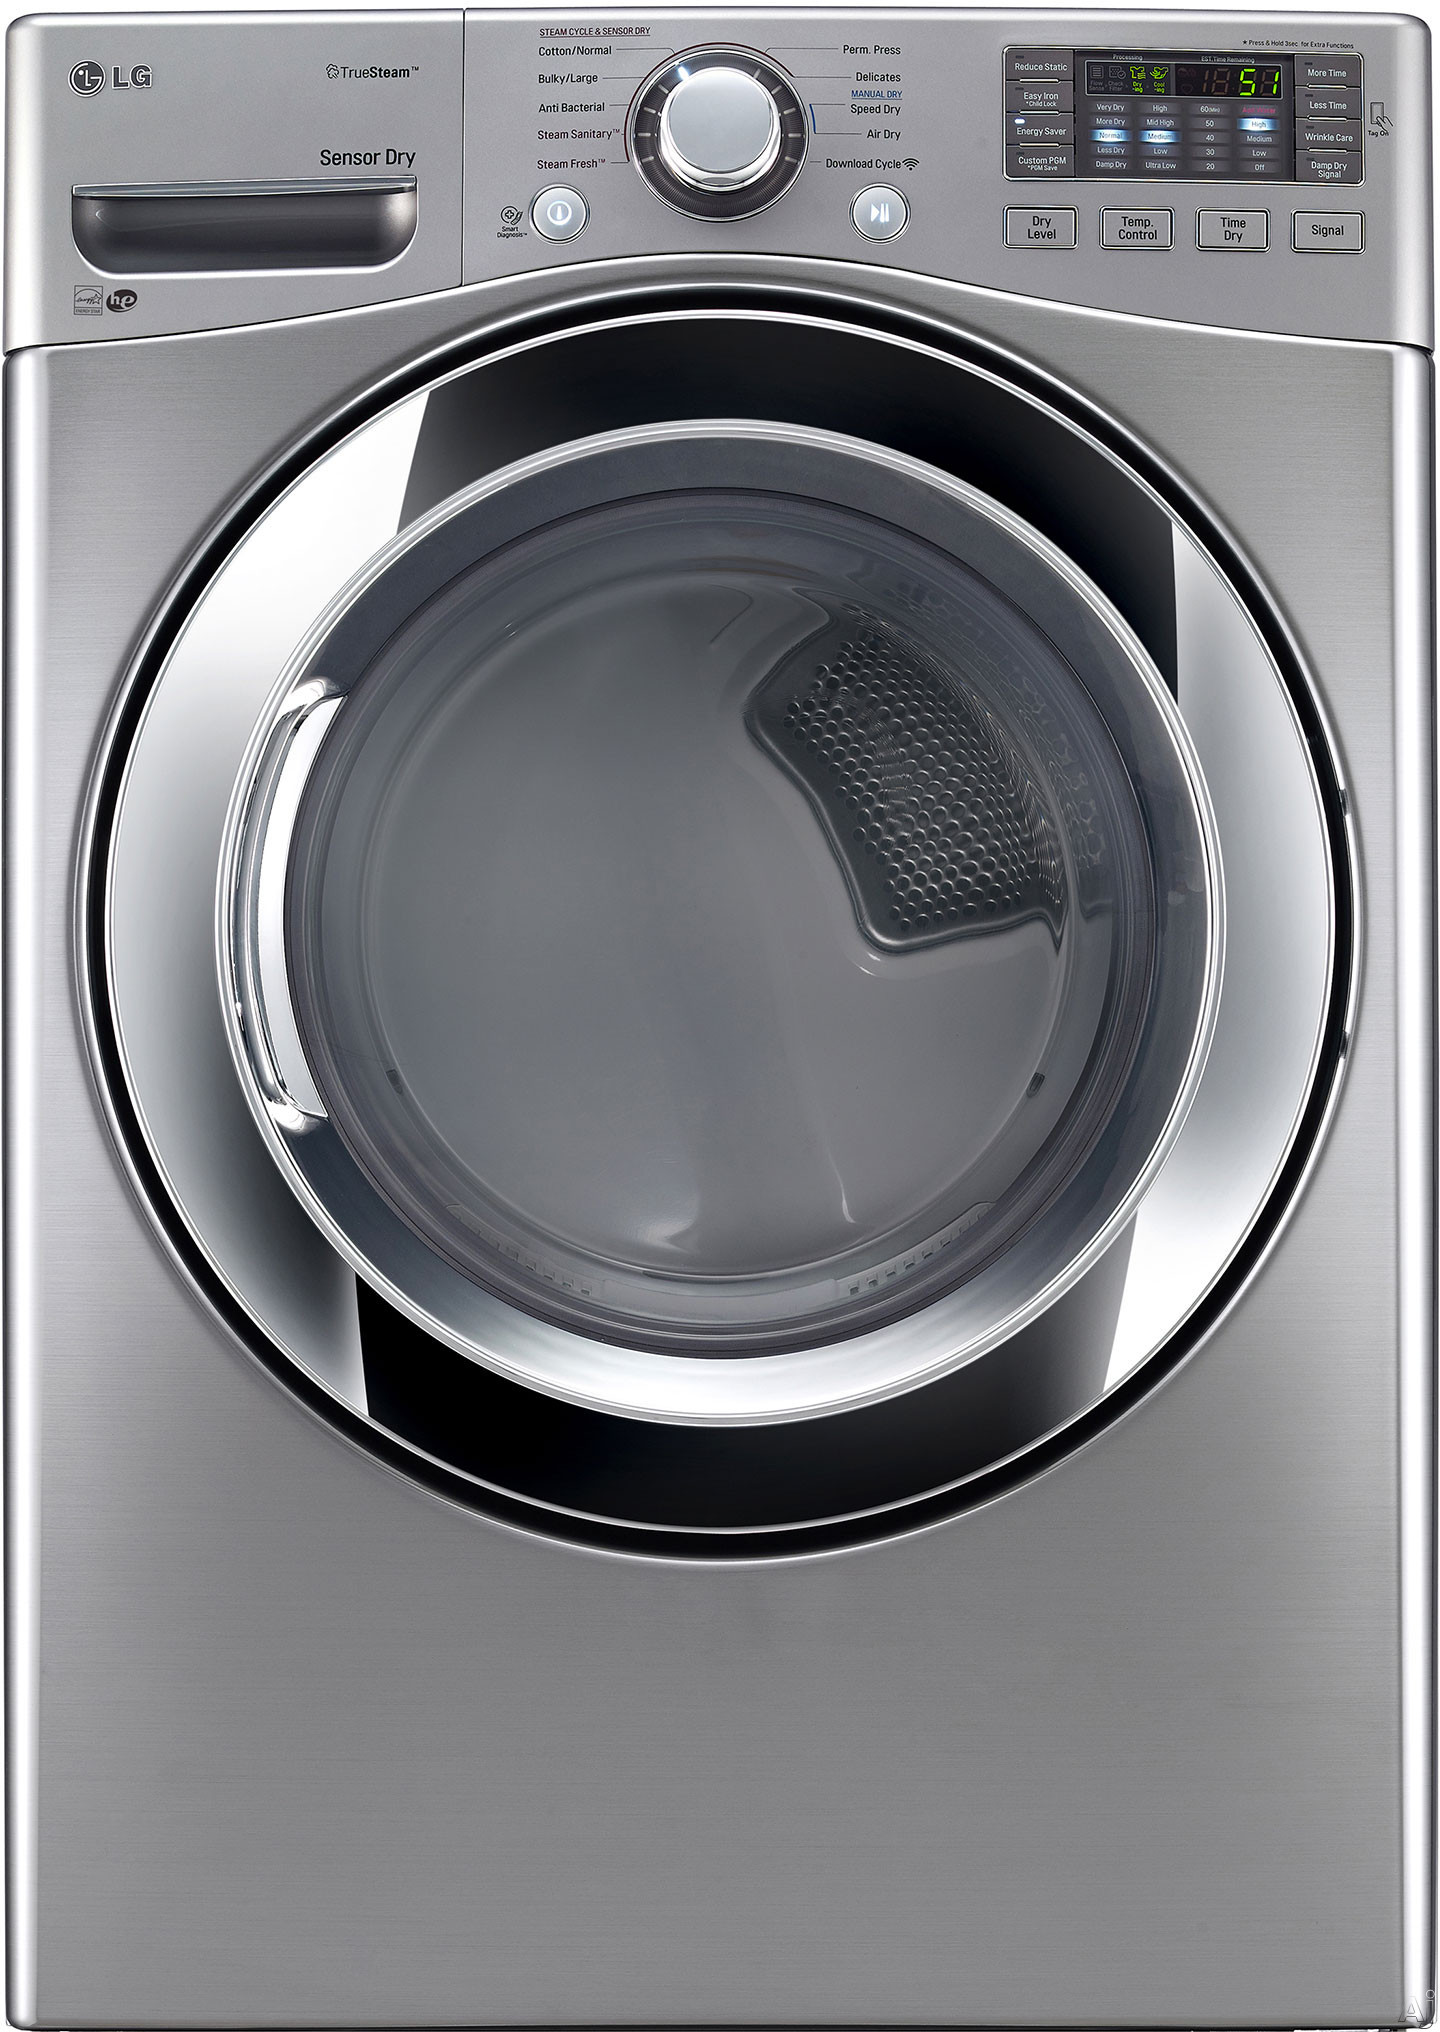 LG DLEX3370V 27 Inch Electric Dryer with TrueSteam Sensor Dry Wrinkle Care Speed Dry 10 Drying Cycles 5 Temperature Settings Smart Diagnosis LoDecibel Quiet Operation ENERGY STAR Stacking Capability L